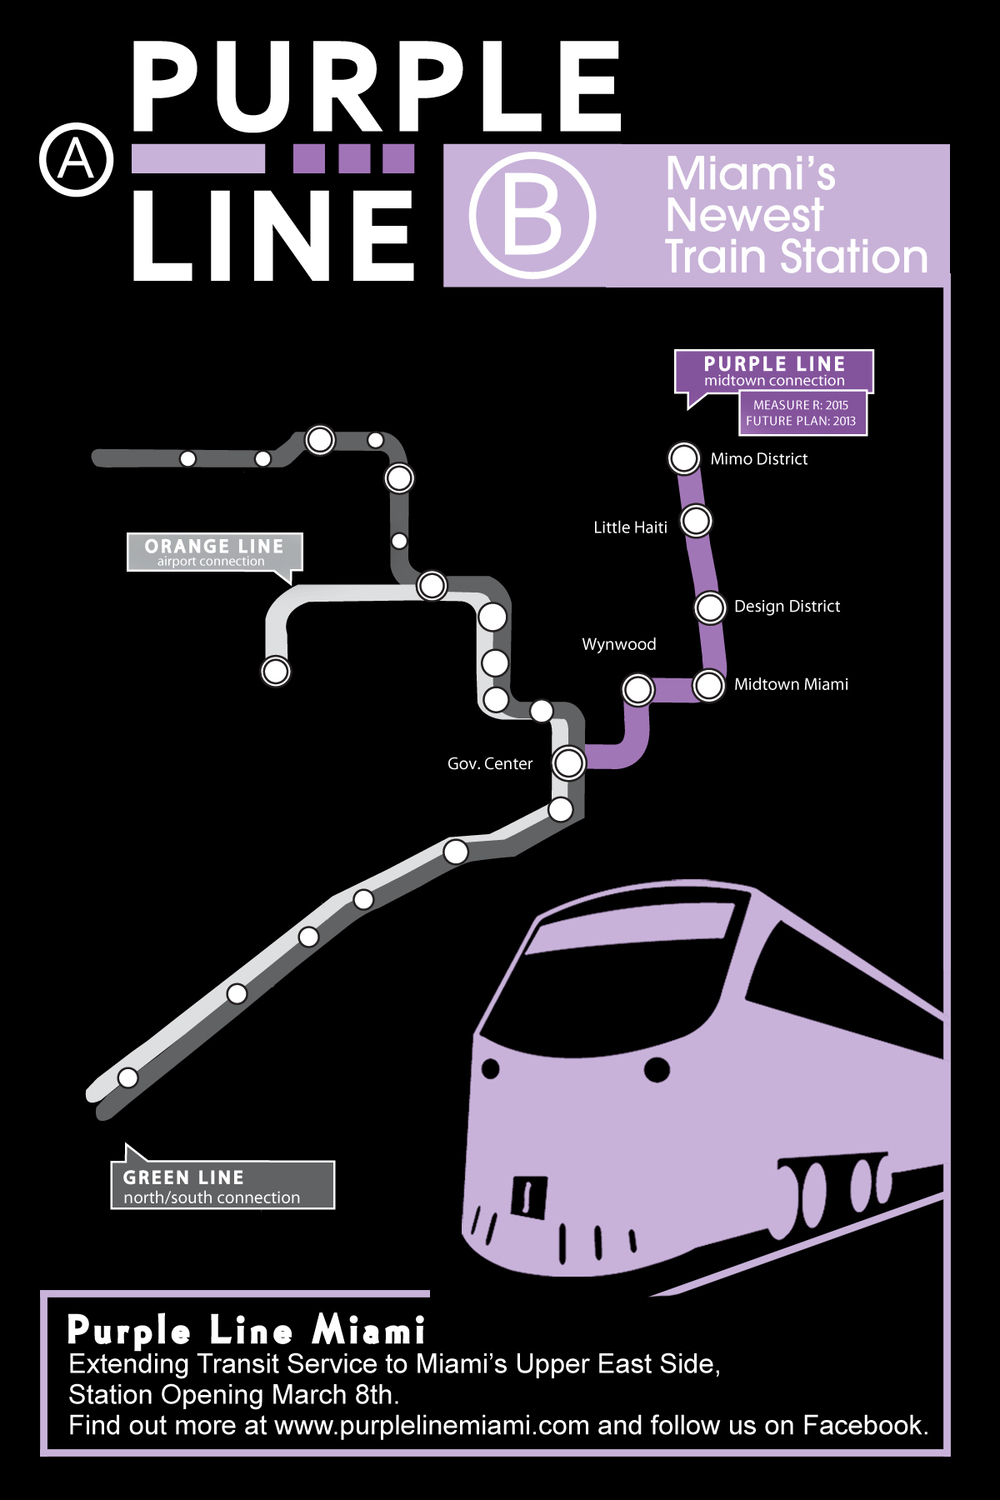 As part of the outreach, we created flyers that announced a new rail line in Miami.  Many believed it was an actual, new line that was opening.